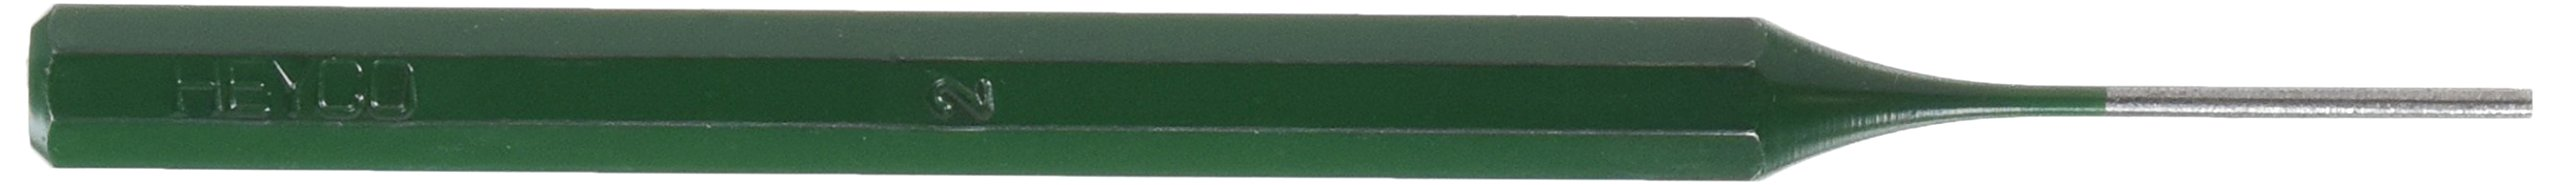 Heyco 1565000221 Parallel pin punch''1565'' 2mm